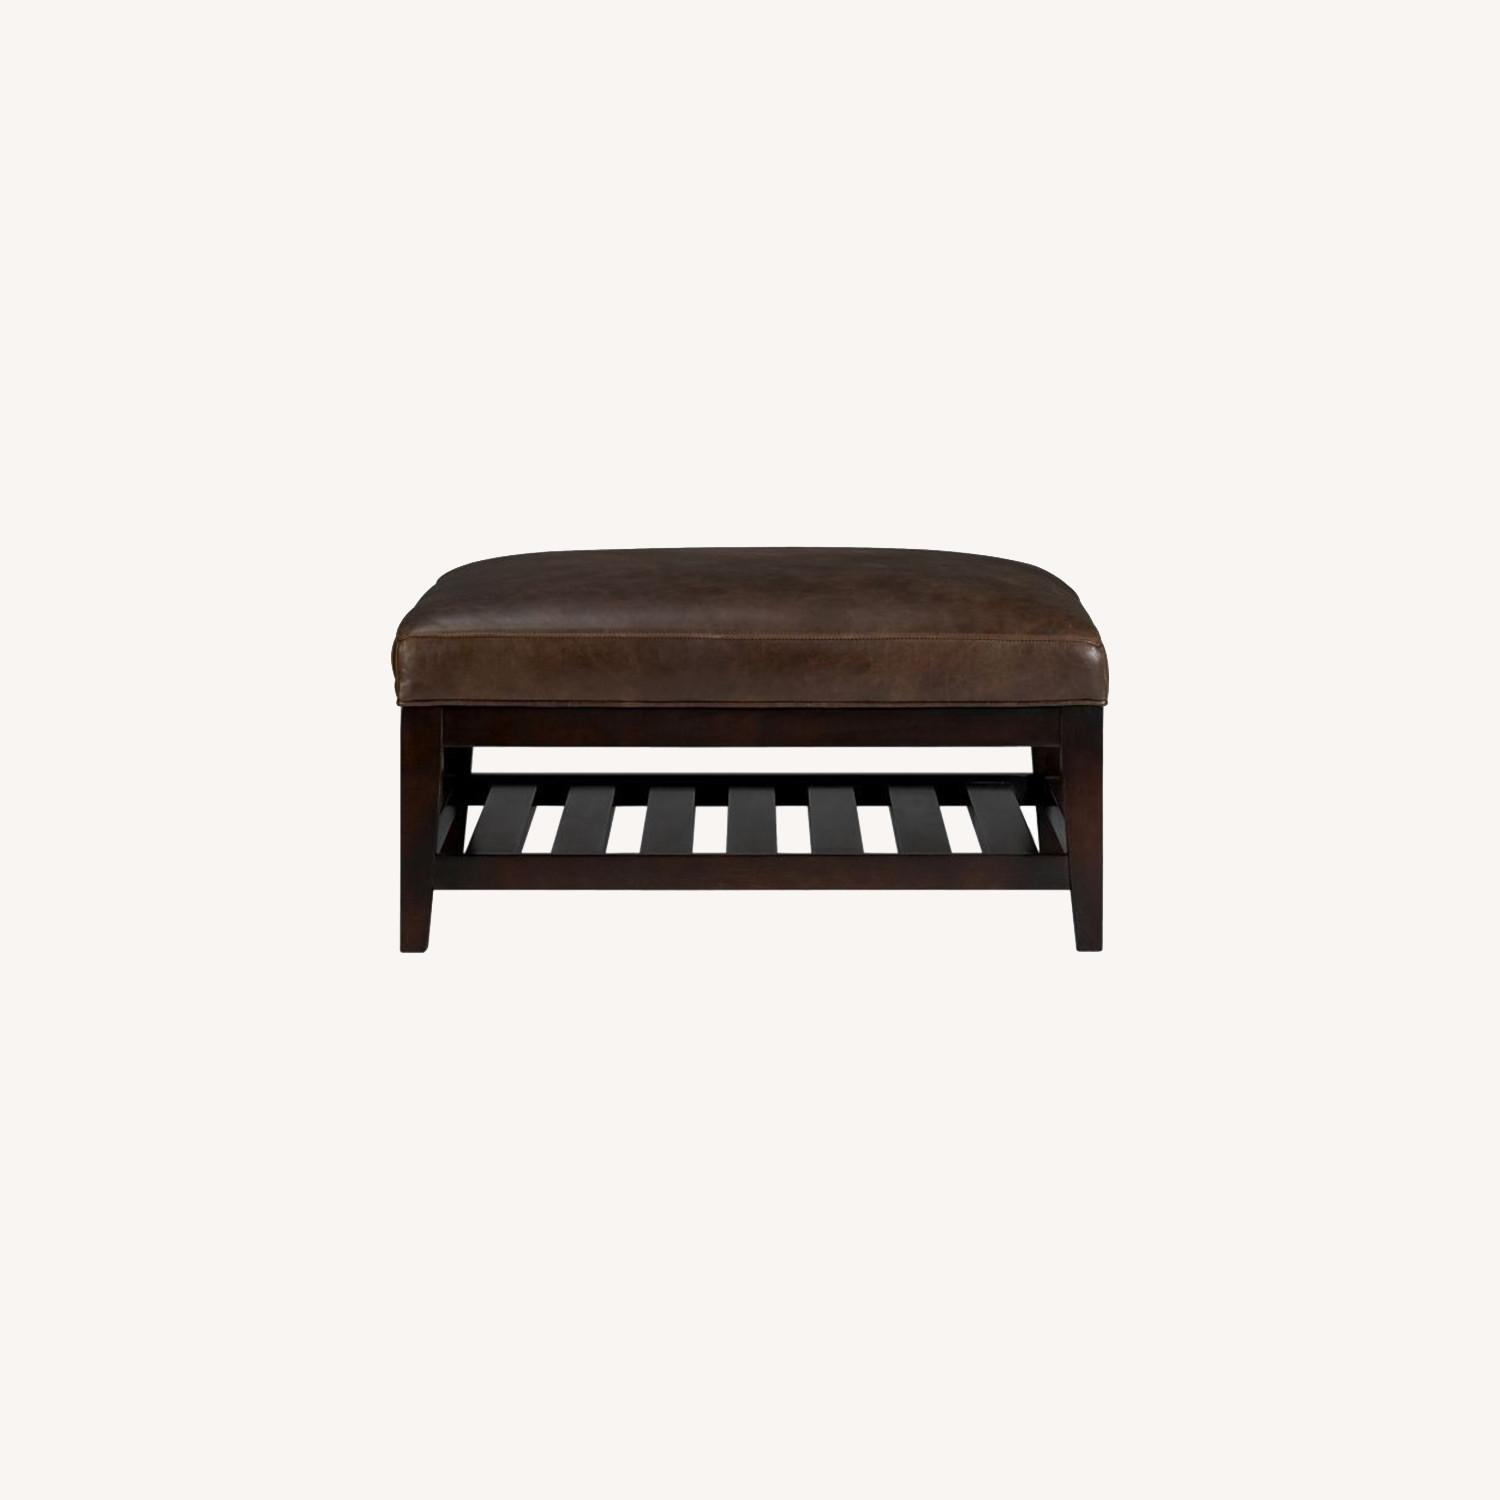 Crate & Barrel Leather & Wood Coffee Table/Ottoman - image-0